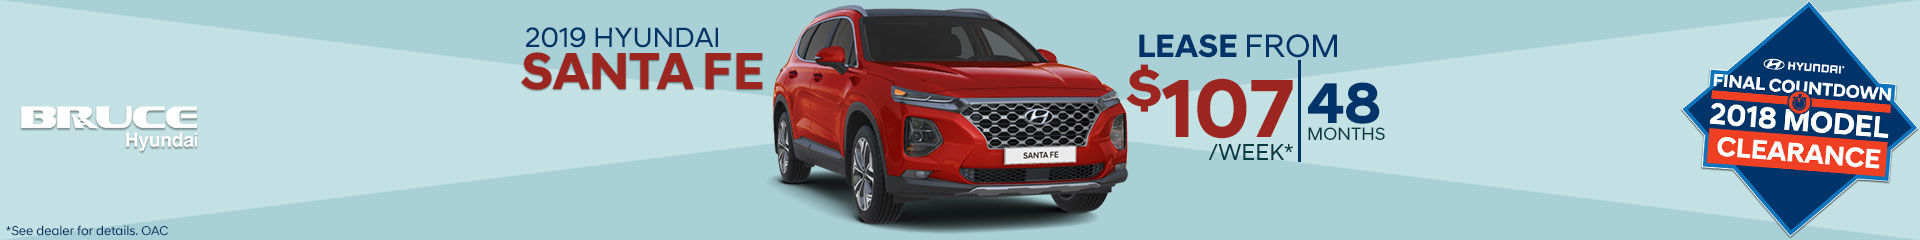 Lease the all-new 2019 Santa Fe